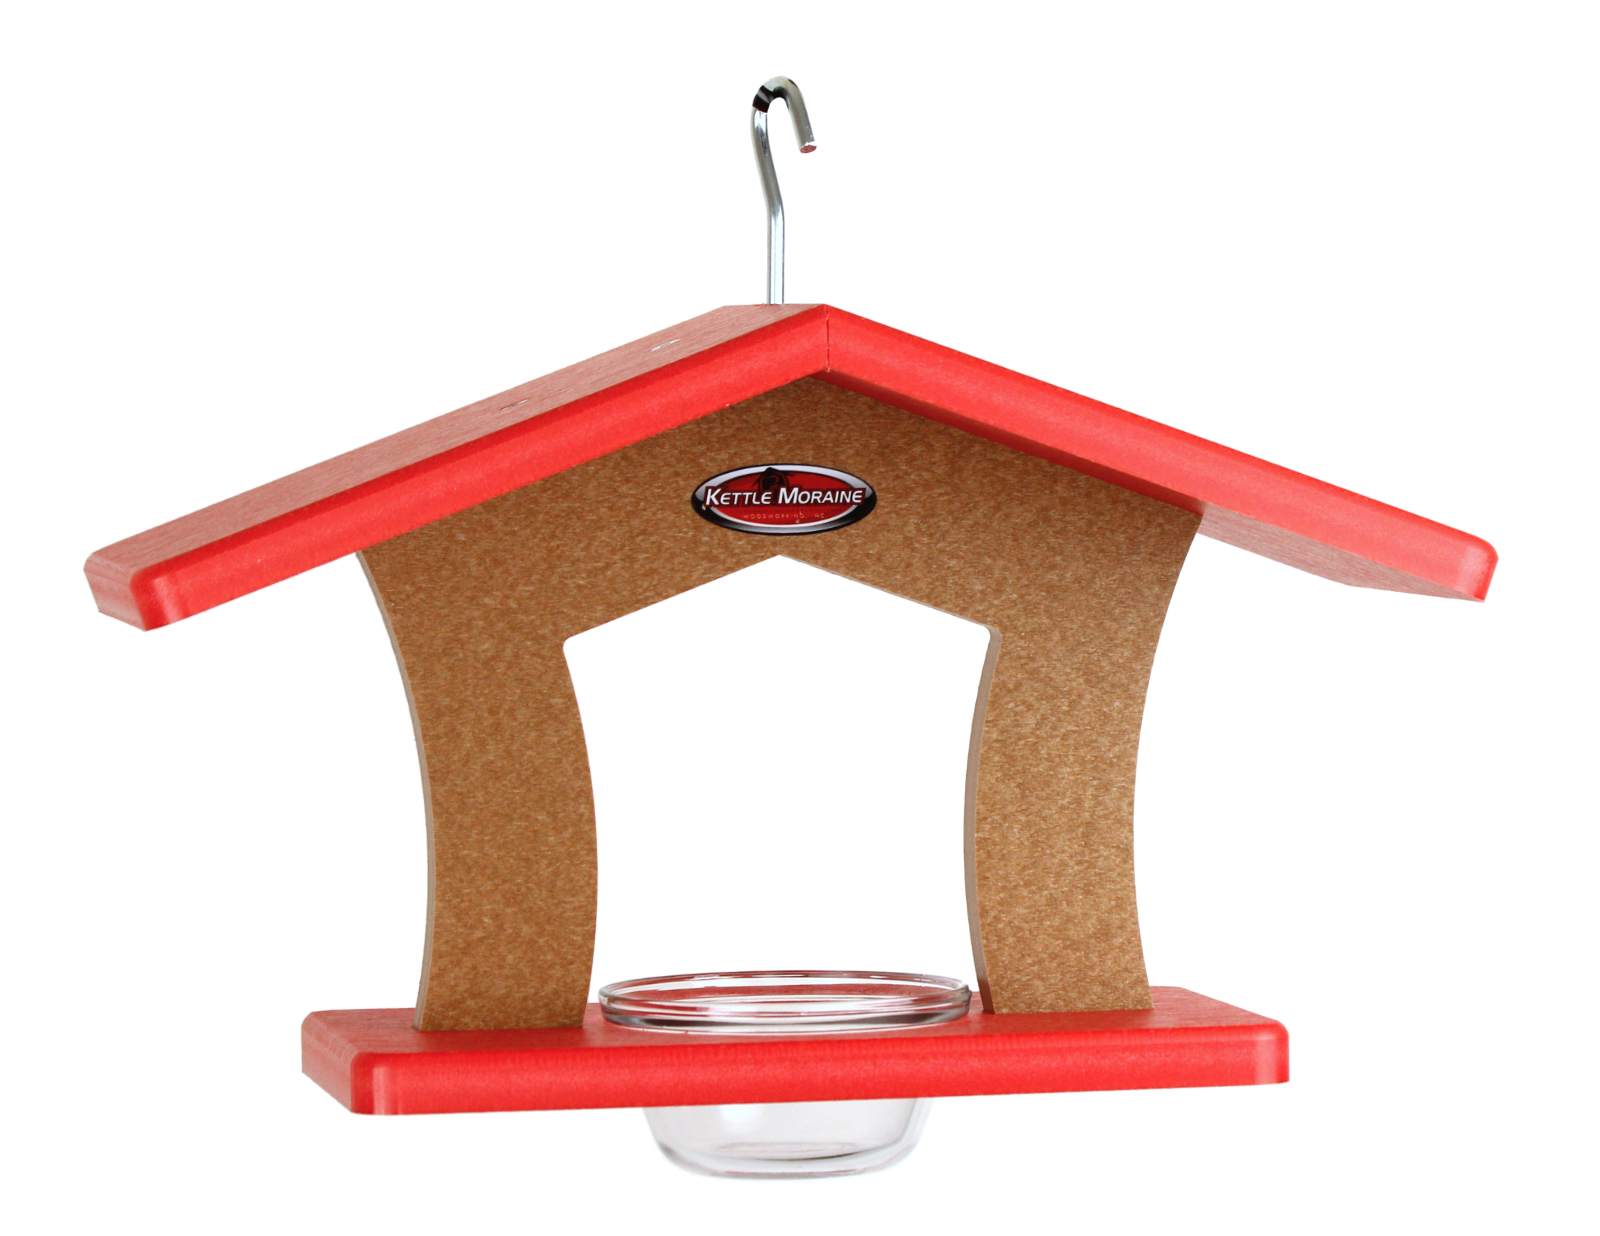 kettle moraine single cup red roofed feeder